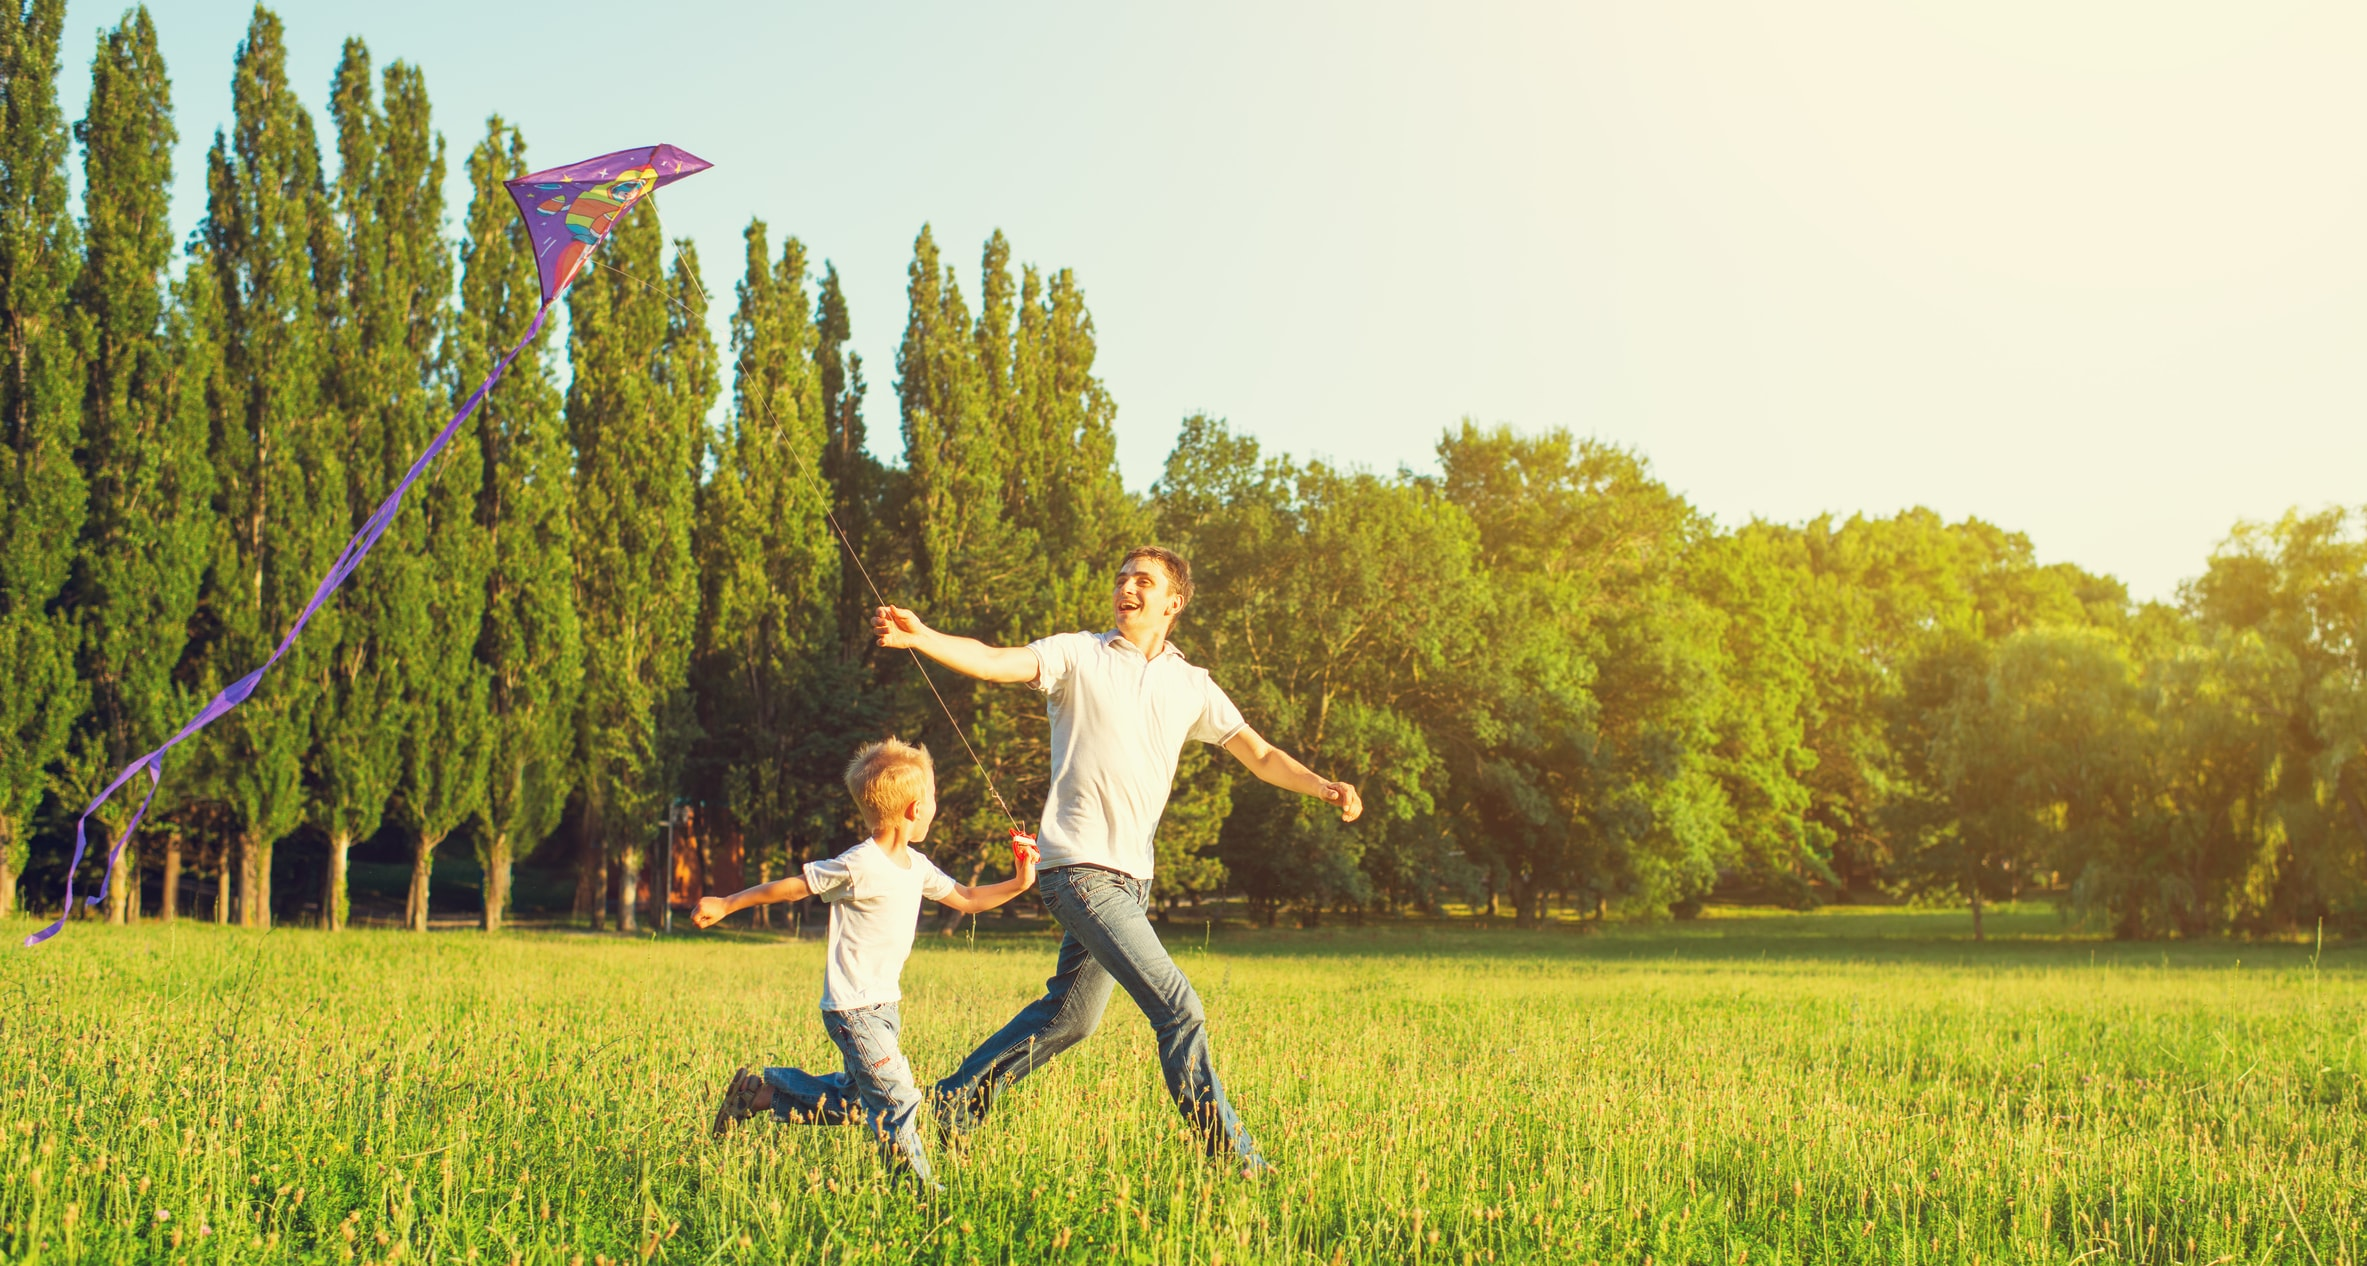 dad-and-son-child-flying-a-kite-in-summer-nature-43238819-min.jpg